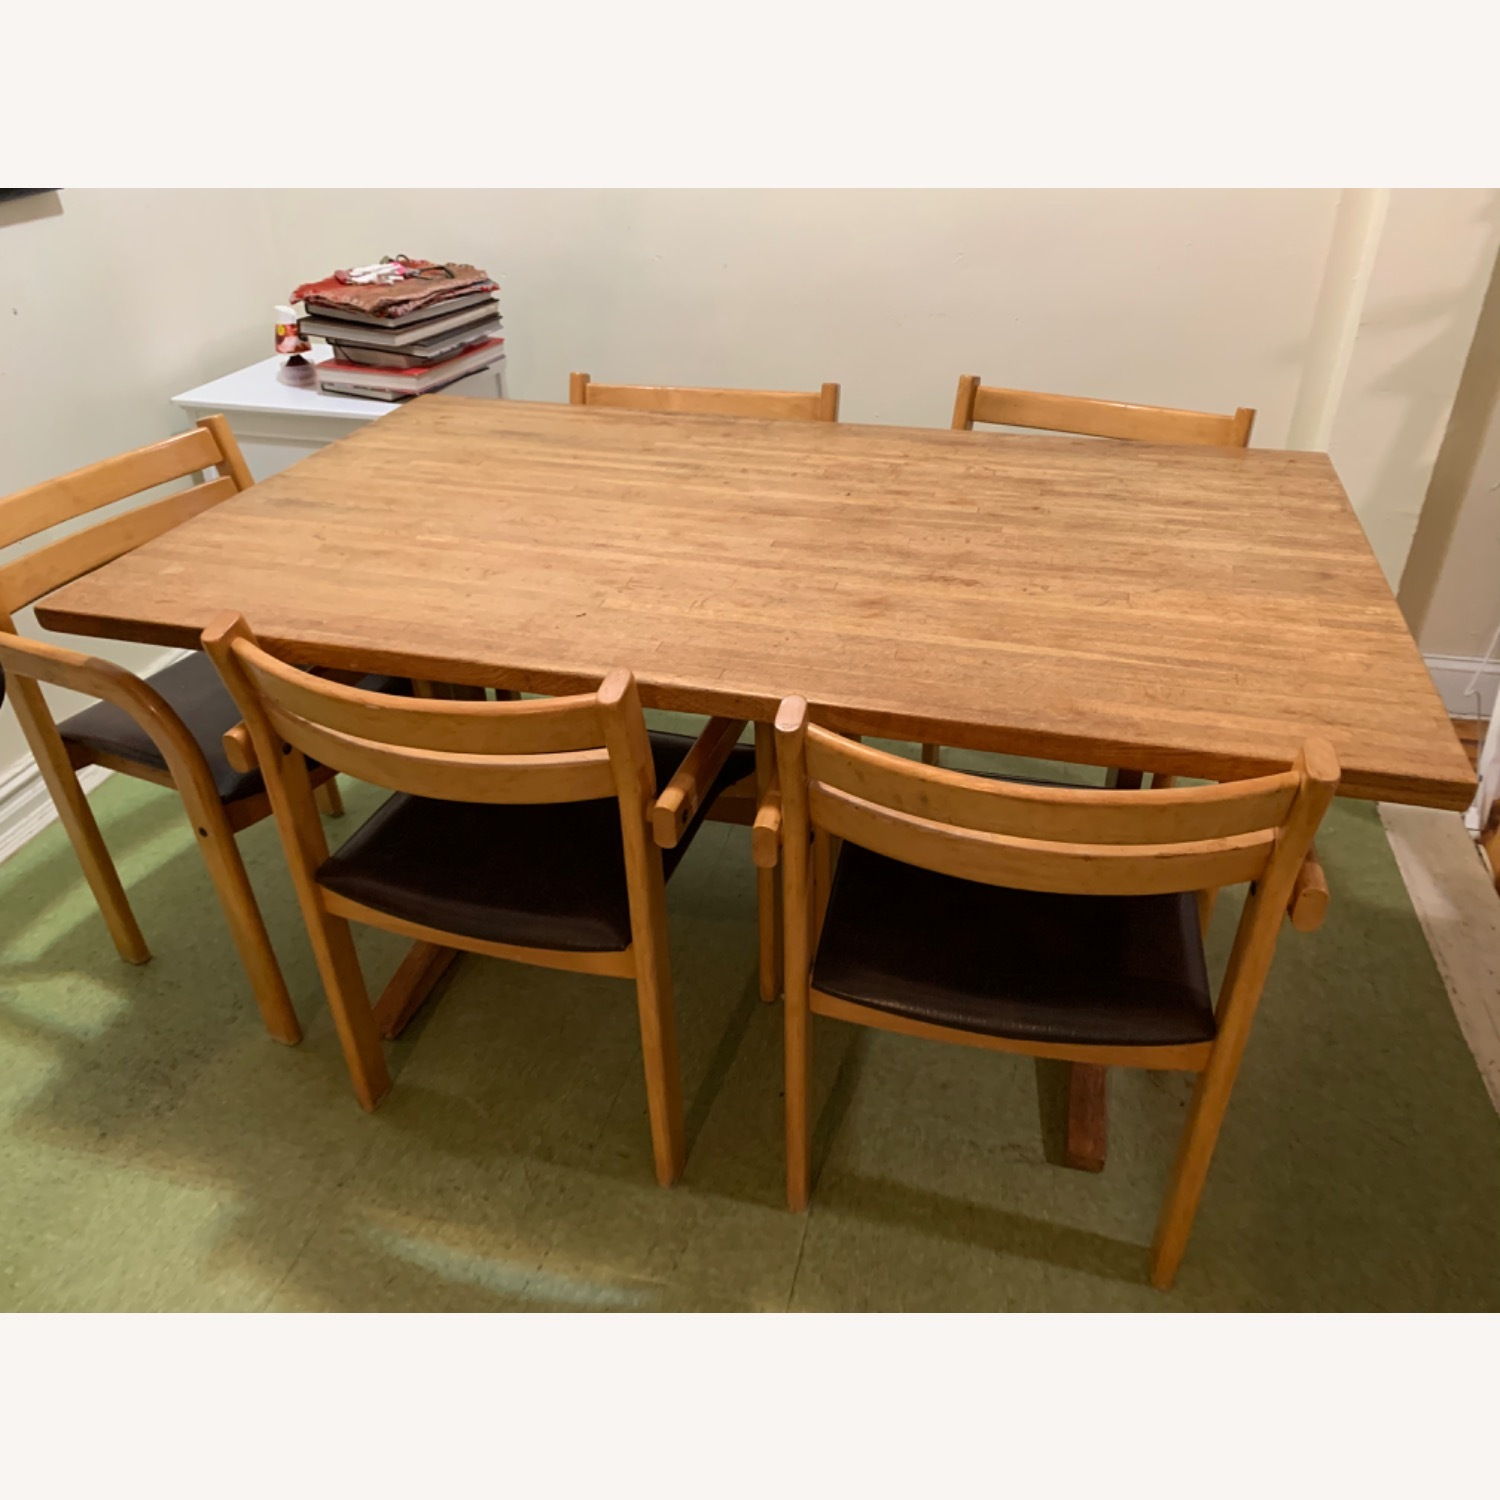 Wood Dining Table and 6 Chairs - image-1